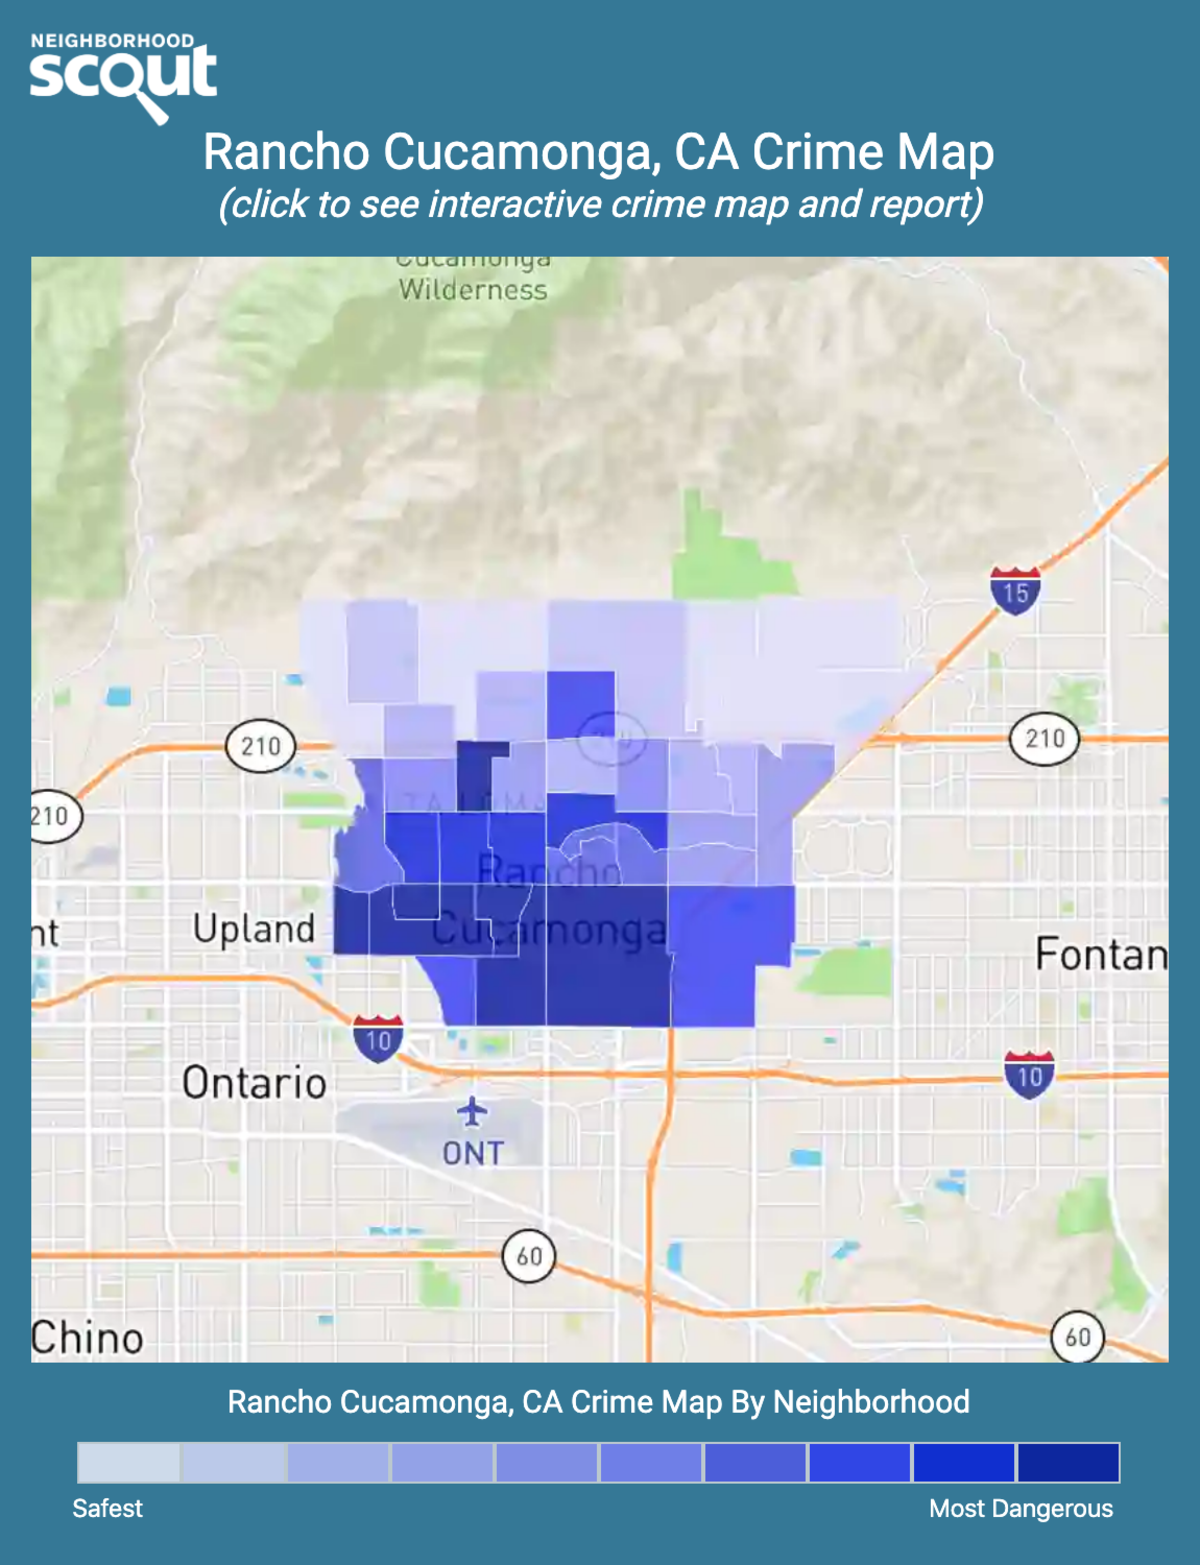 Rancho Cucamonga, California crime map